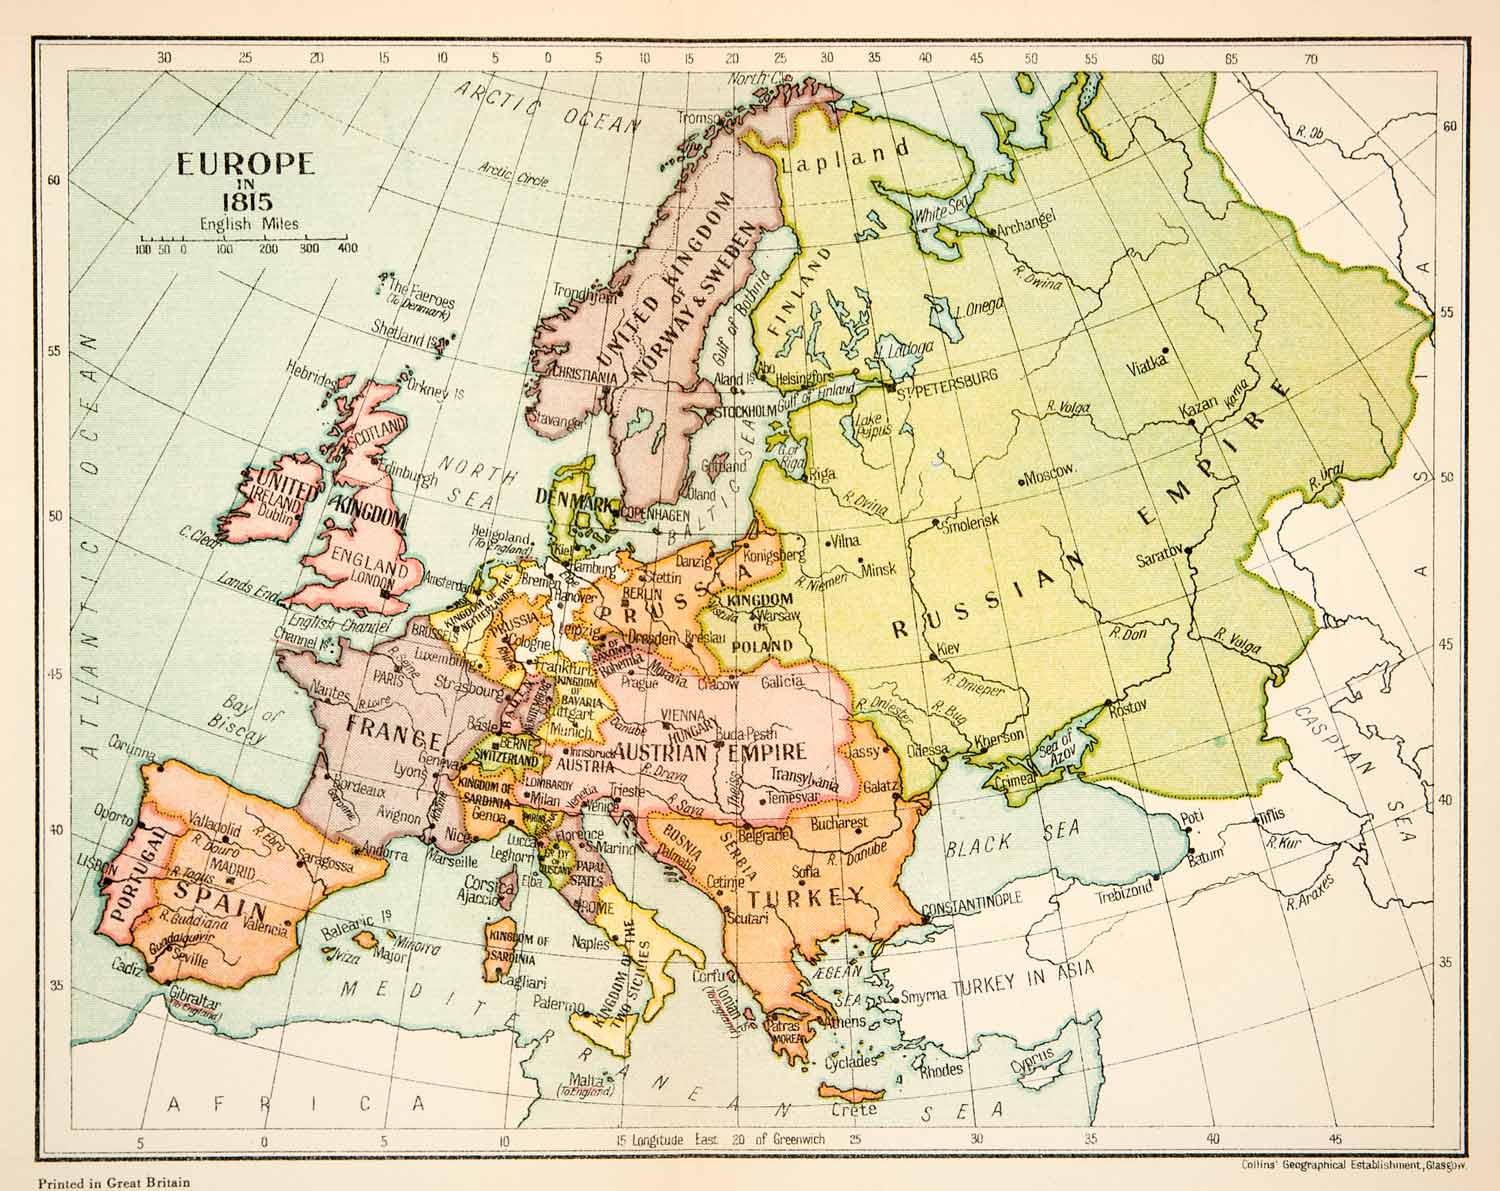 1926 Lithograph Map Europe 1815 Russian Empire France Turkey Spain Portugal